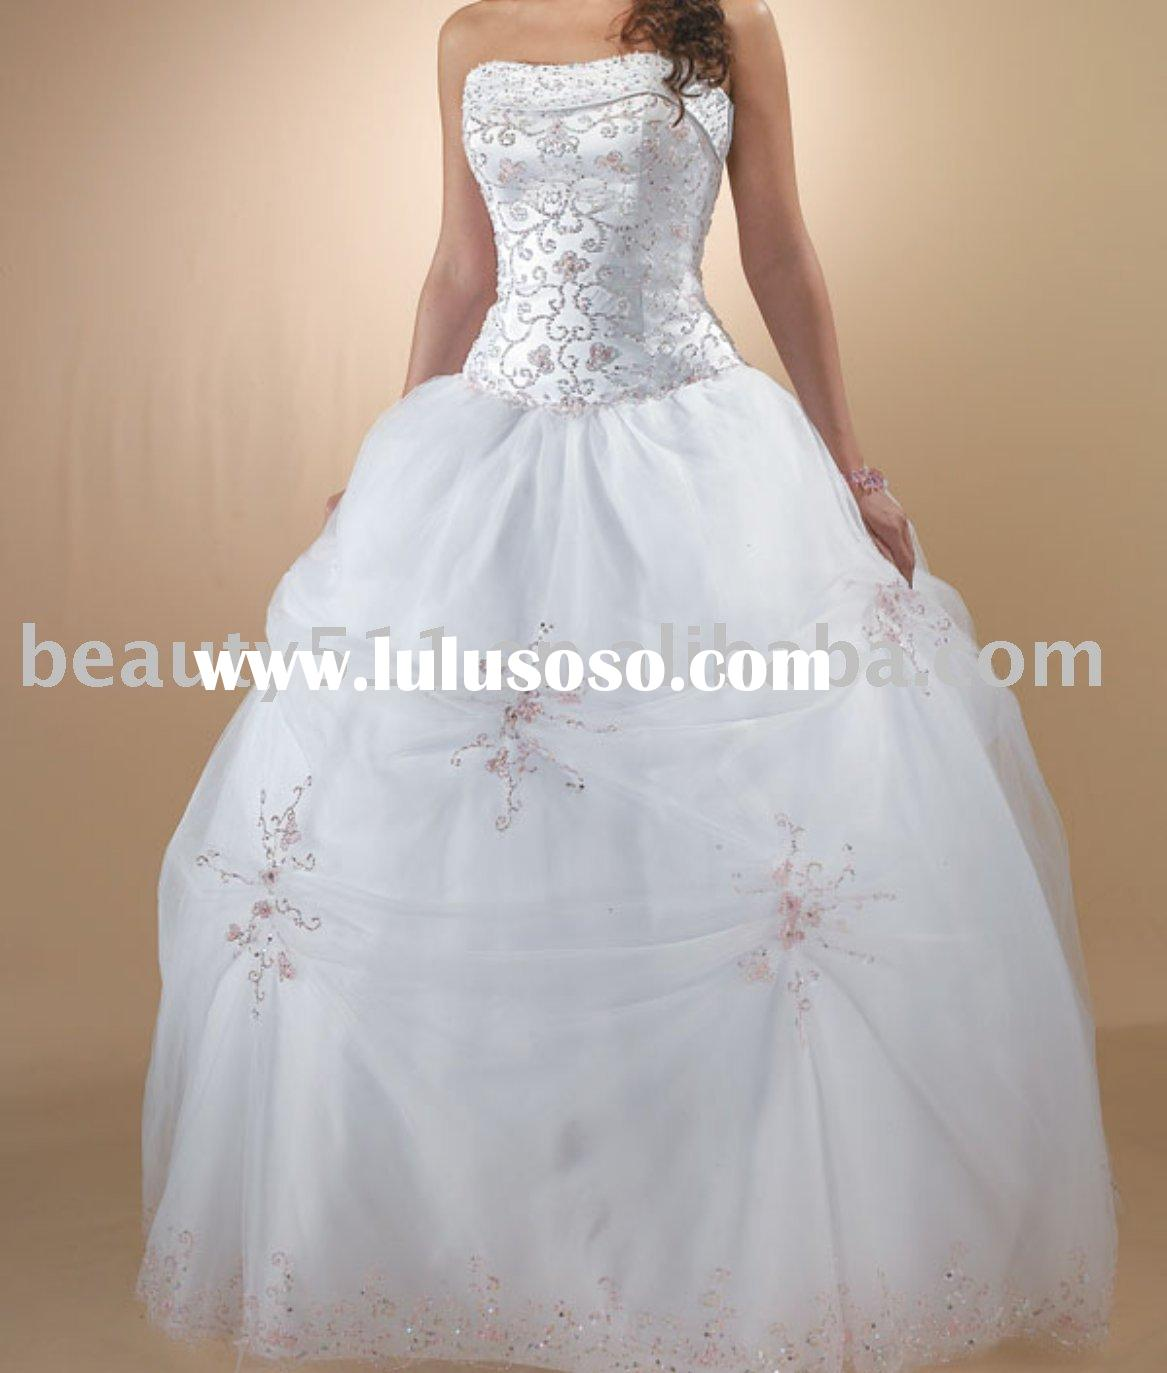 Vintage wedding dresses san diego cheap wedding dresses for Italian design wedding dresses